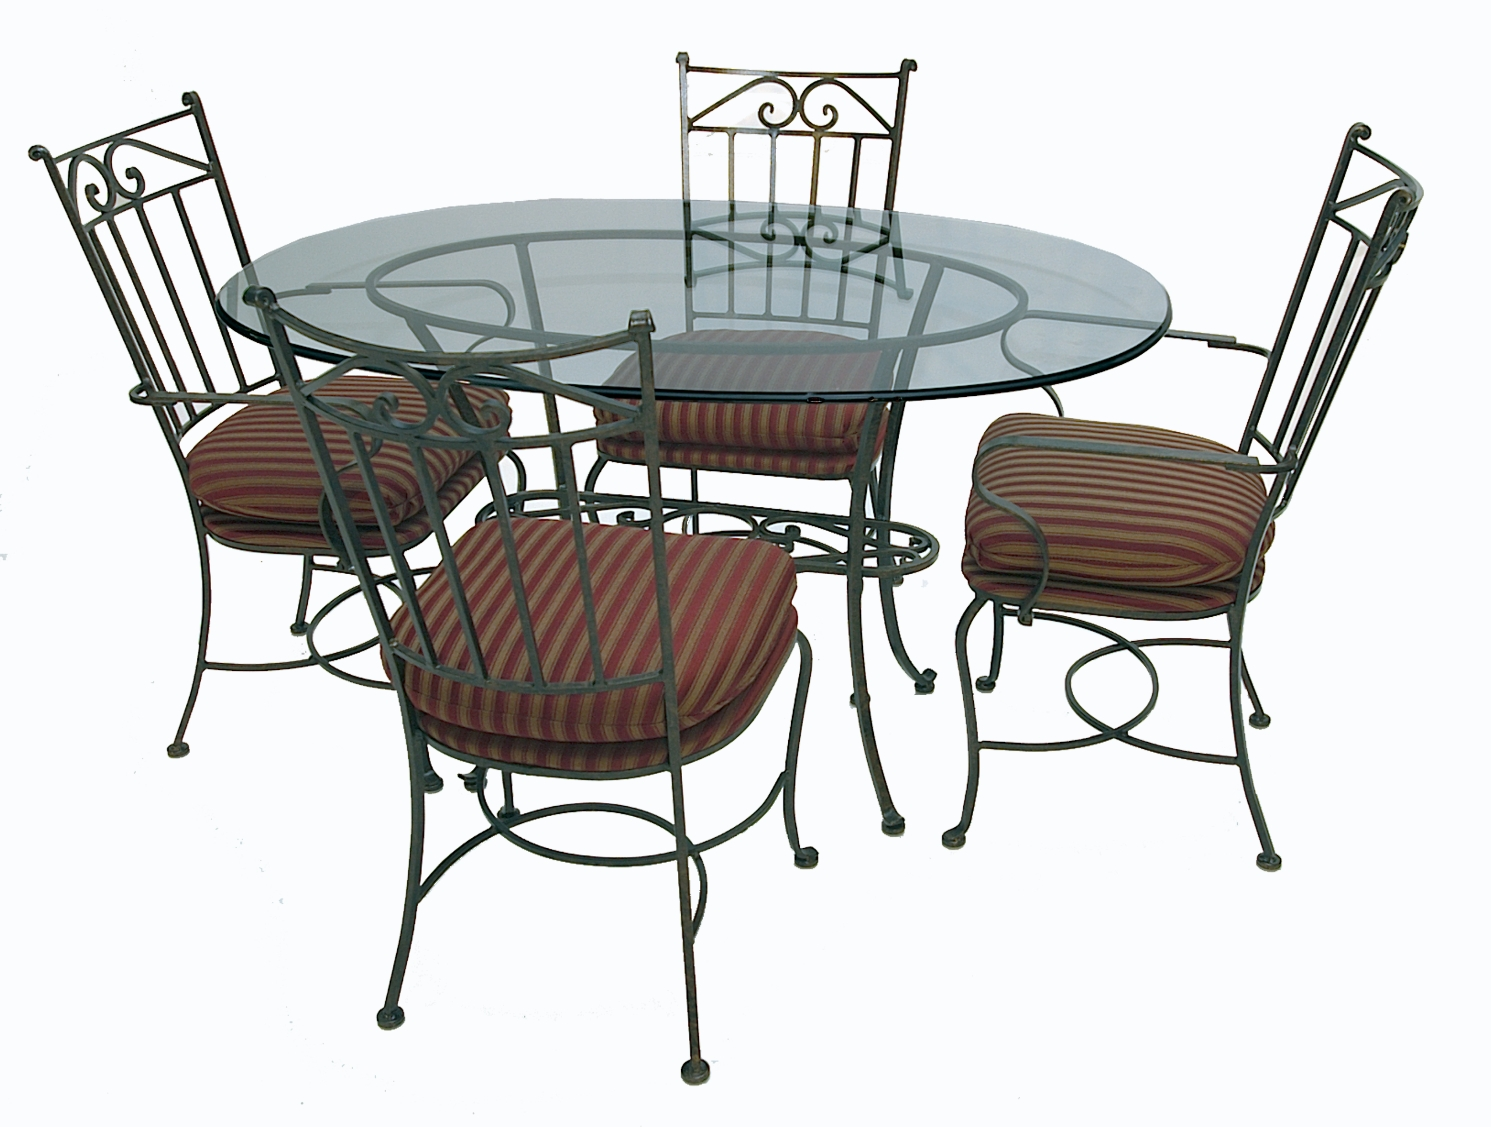 rot iron furniture. MANUFACTURERS OF FINE WROUGHT IRON PRODUCTS Rot Iron Furniture